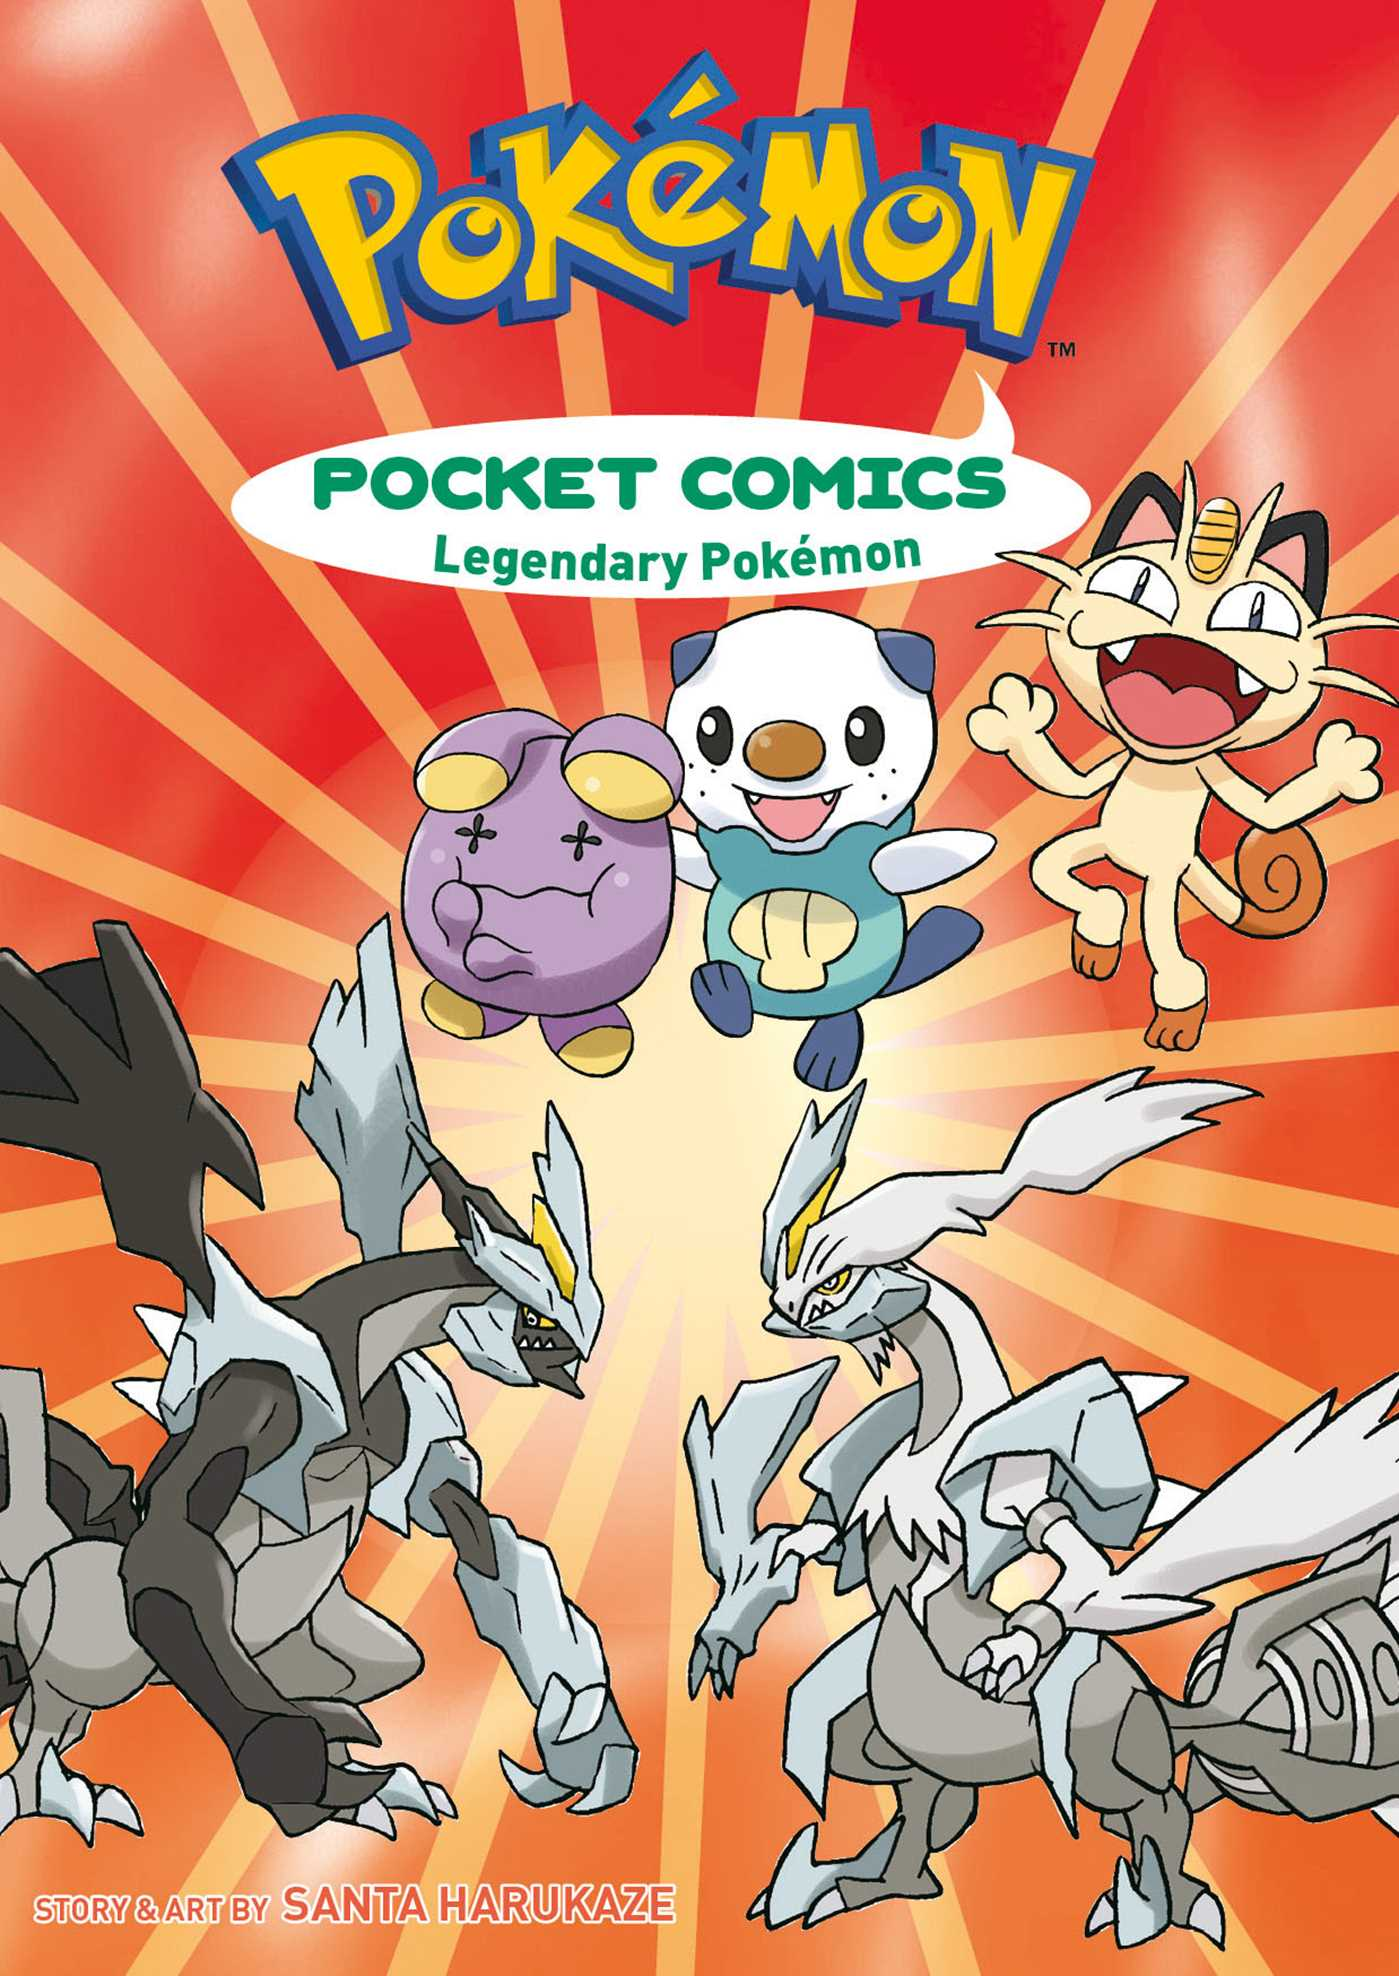 Pokémon Pocket Comics | Book by Santa Harukaze | Official ...